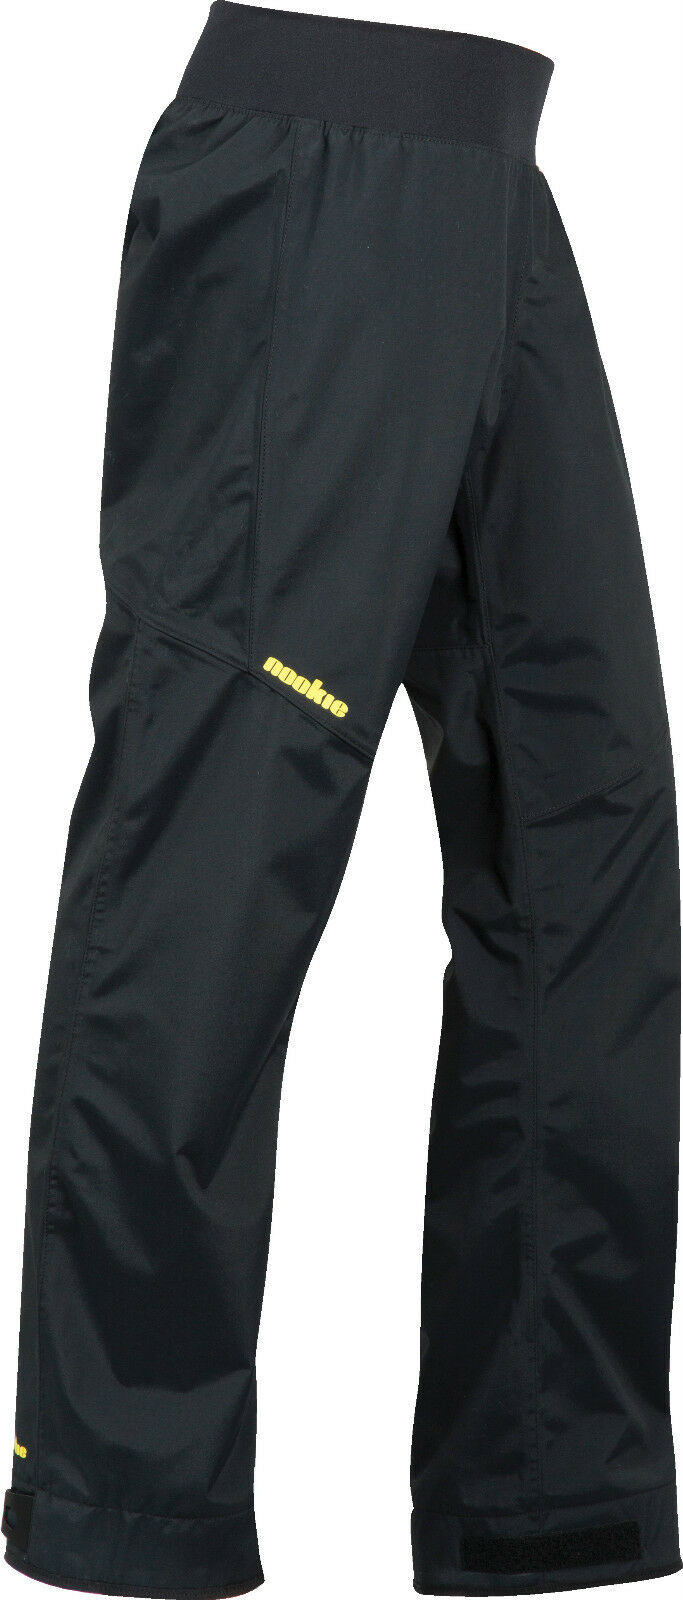 Nookie Nimbus Waterproof Windproof Over Trousers-Kayak, Canoe, Sailing, Walking